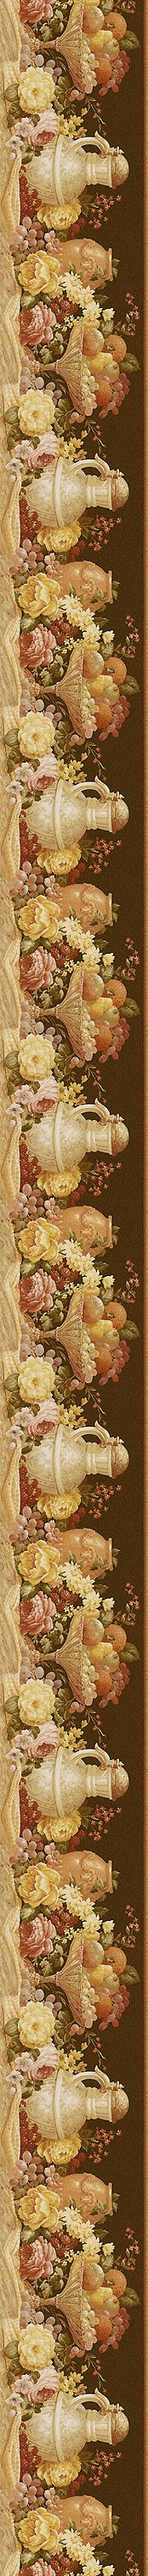 Still life border for dollhouse kitchen - Print this page to come out to Art Vintage, Vintage Cards, Vintage Paper, Vintage Prints, Printable Border, Decoupage Printables, Decopage, Borders And Frames, Decoupage Paper